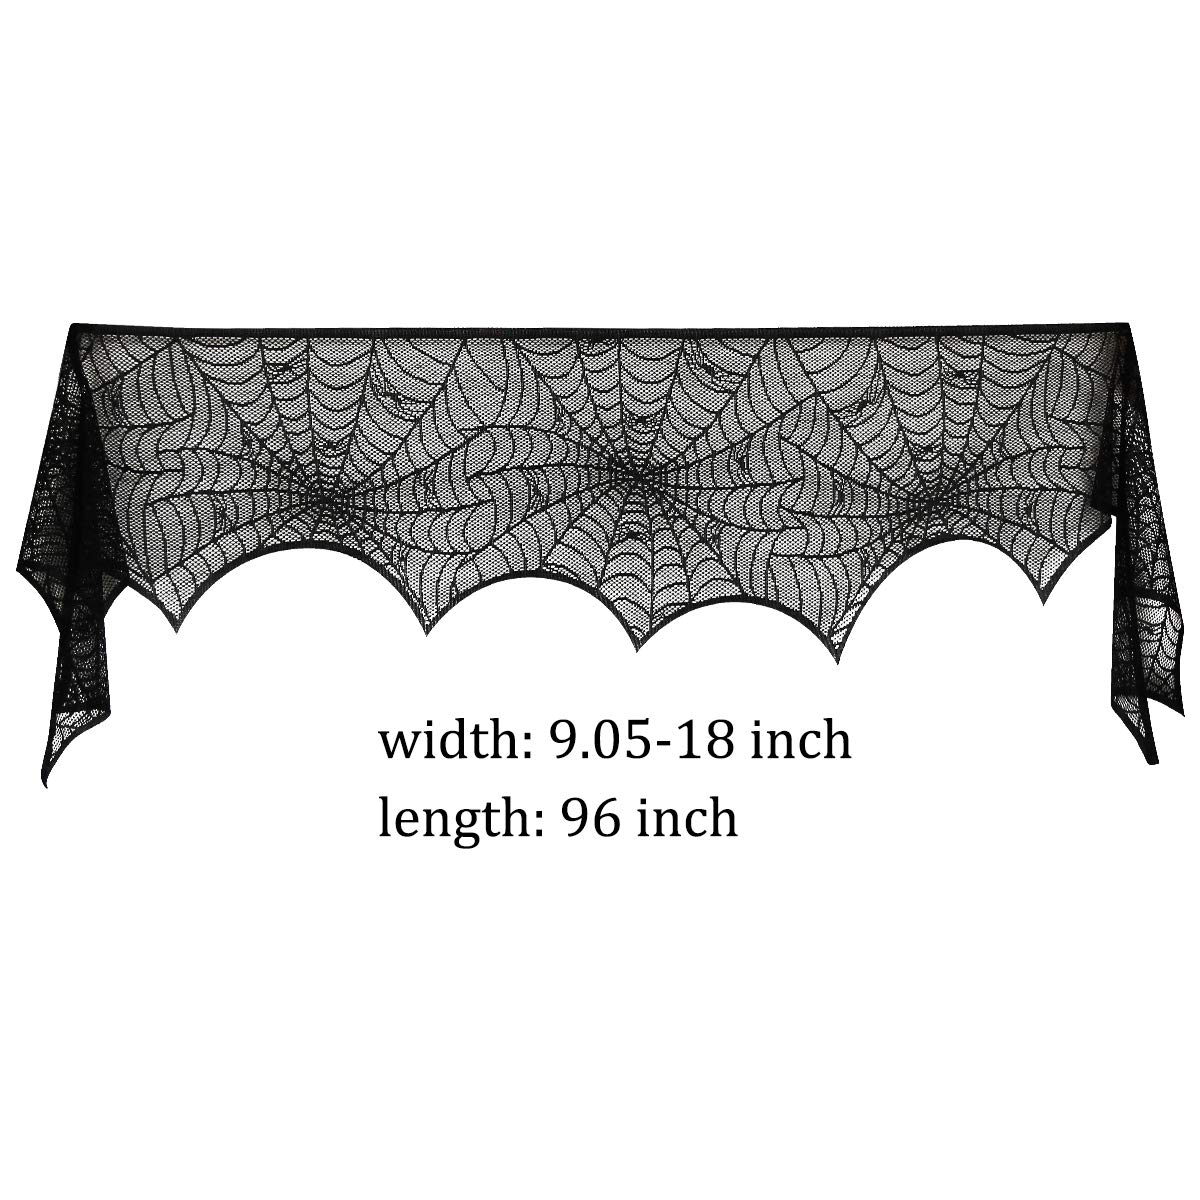 HSicily Halloween Spiderweb Cobweb Fireplace Mantle Scarf Cover Black Lace Spider Web Mantle for Party Supplies Door Window Decoration